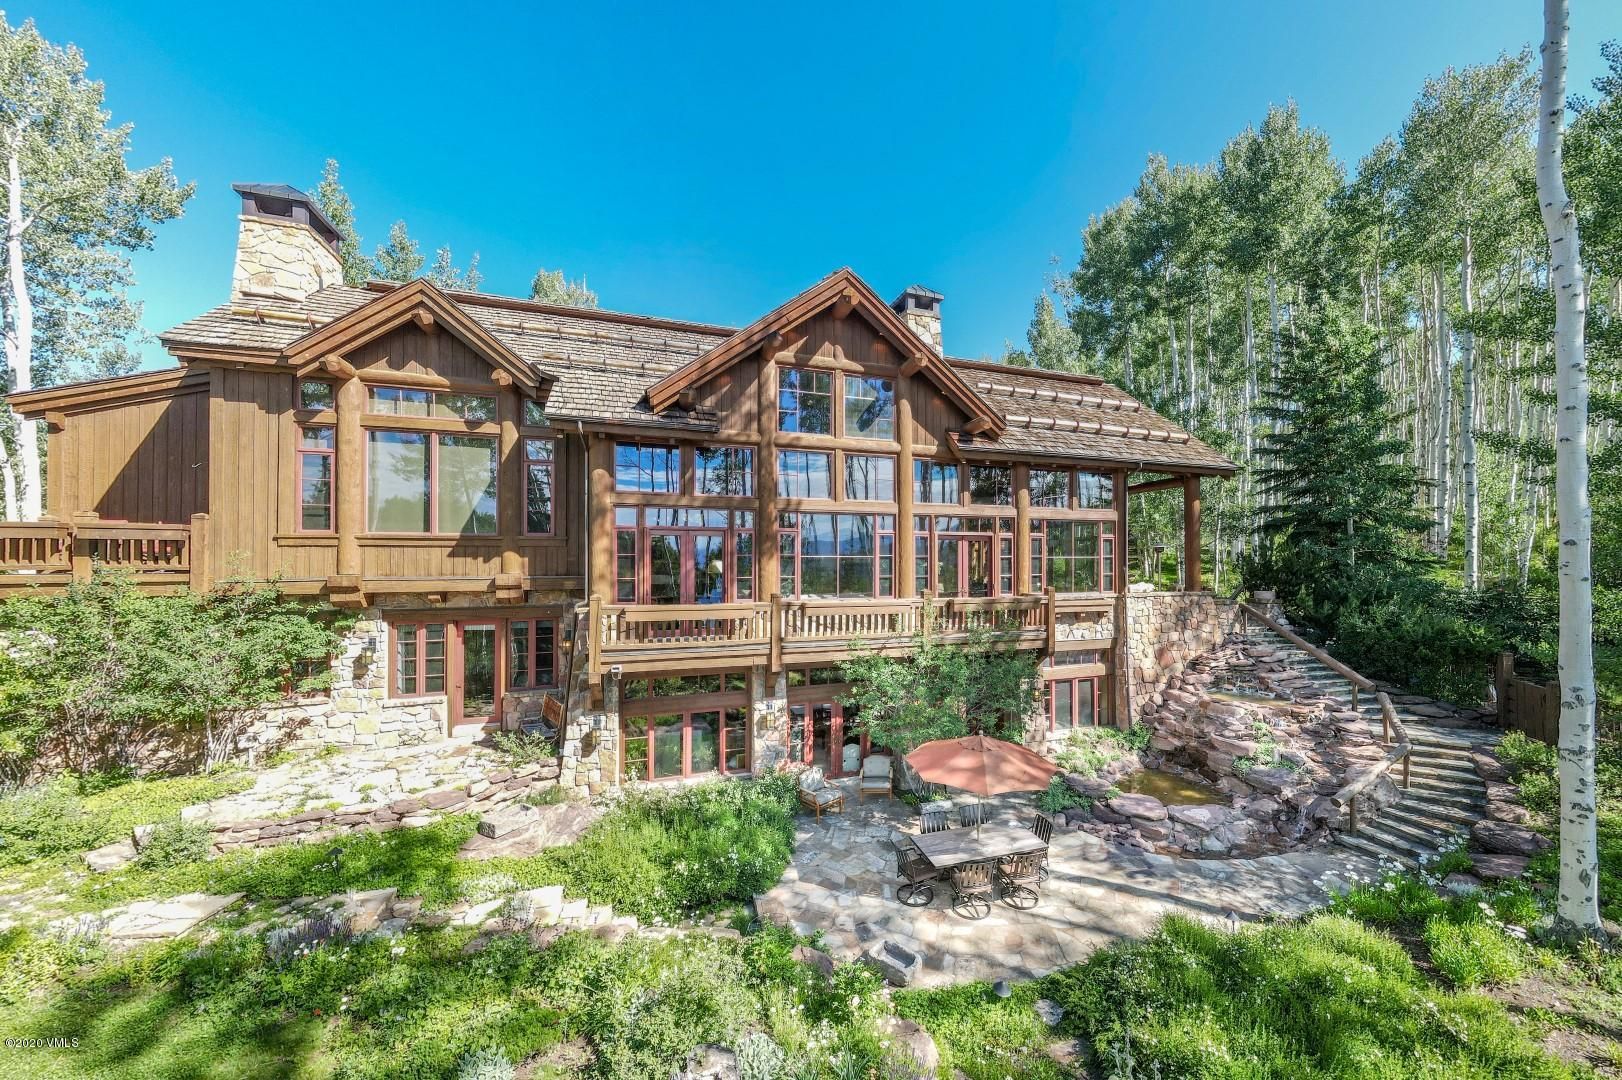 ''We watch foxes, pine martins, squirrels, deer, elk, birds especially hummingbirds.   We see all of this wildlife right out our windows.''-Homeowner .................... A rare, once in a generation opportunity to own a secluded luxury estate situated on top of the world only minutes to Vail and Beaver Creek, Colorado.  An air of grandeur pervades the over 10,000-square-foot alpine retreat, with every space warm and welcoming.  Inspired by travel, art and nature and designed by celebrated architect Paul Miller, this home features rich and sophisticated tones, exceptional quality of construction, generous scale and warm and inviting interiors that will satisfy the most discerning of tastes.  After entering the private gate, revel in the tranquility and serenity as you climb within Mountain Star to an elevated setting through the lush landscape and aspen groves and arrive at the residence.  Welcome to 208 Shooting Star.  Some of the many exceptional features of this this property include colossal views of the surrounding mountain peaks, magnificent entertaining areas, sophisticated wine room, 8 hallmark fireplaces all hidden in a flourishing aspen forest and greenery of the landscape with 2 enchanting water features. .................... Enveloping the residence are an abundance of wonderful outdoor living spaces, each of which has been thoughtfully positioned for the ultimate enjoyment of the views and soothing surroundings.  Breath in the fresh air, stroll through the soft rolling topography and simply take it all in.  Privacy and enchantment await.  Spend a week or spend a lifetime, you will not be disappointed.